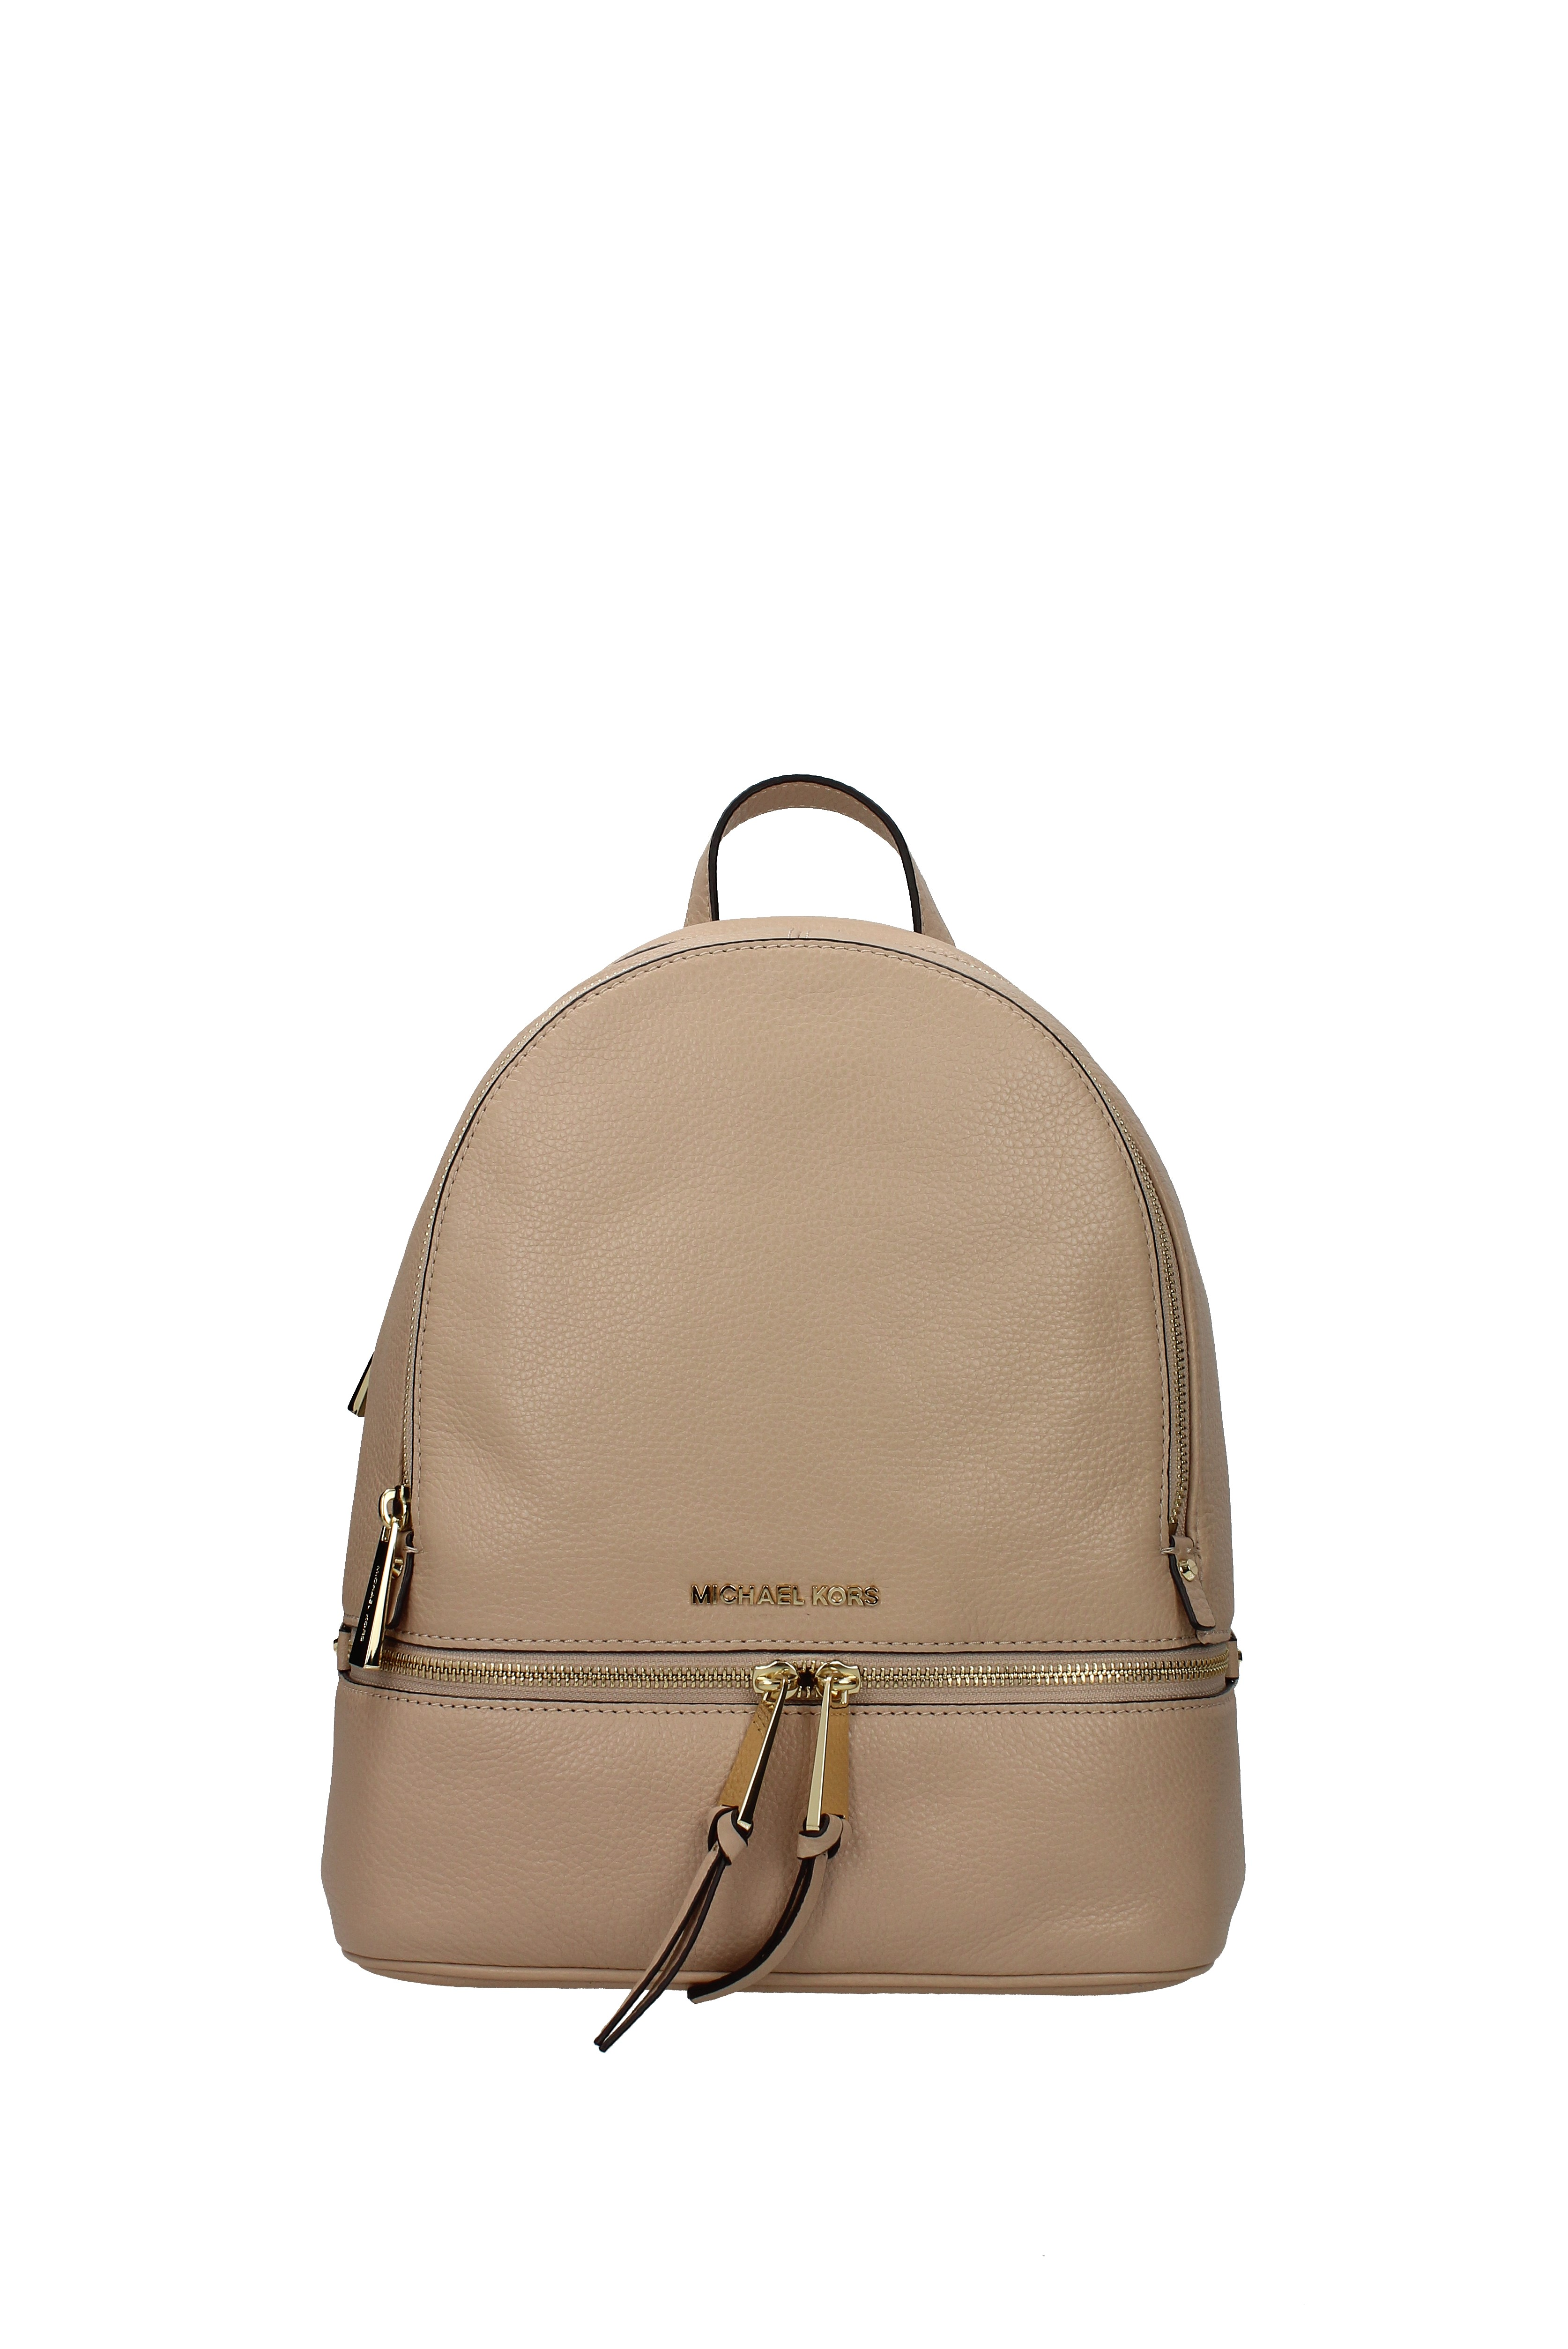 4e0c6fdcbfe4 Backpacks and bumbags Michael Kors rhea zip md Women - Leather ...